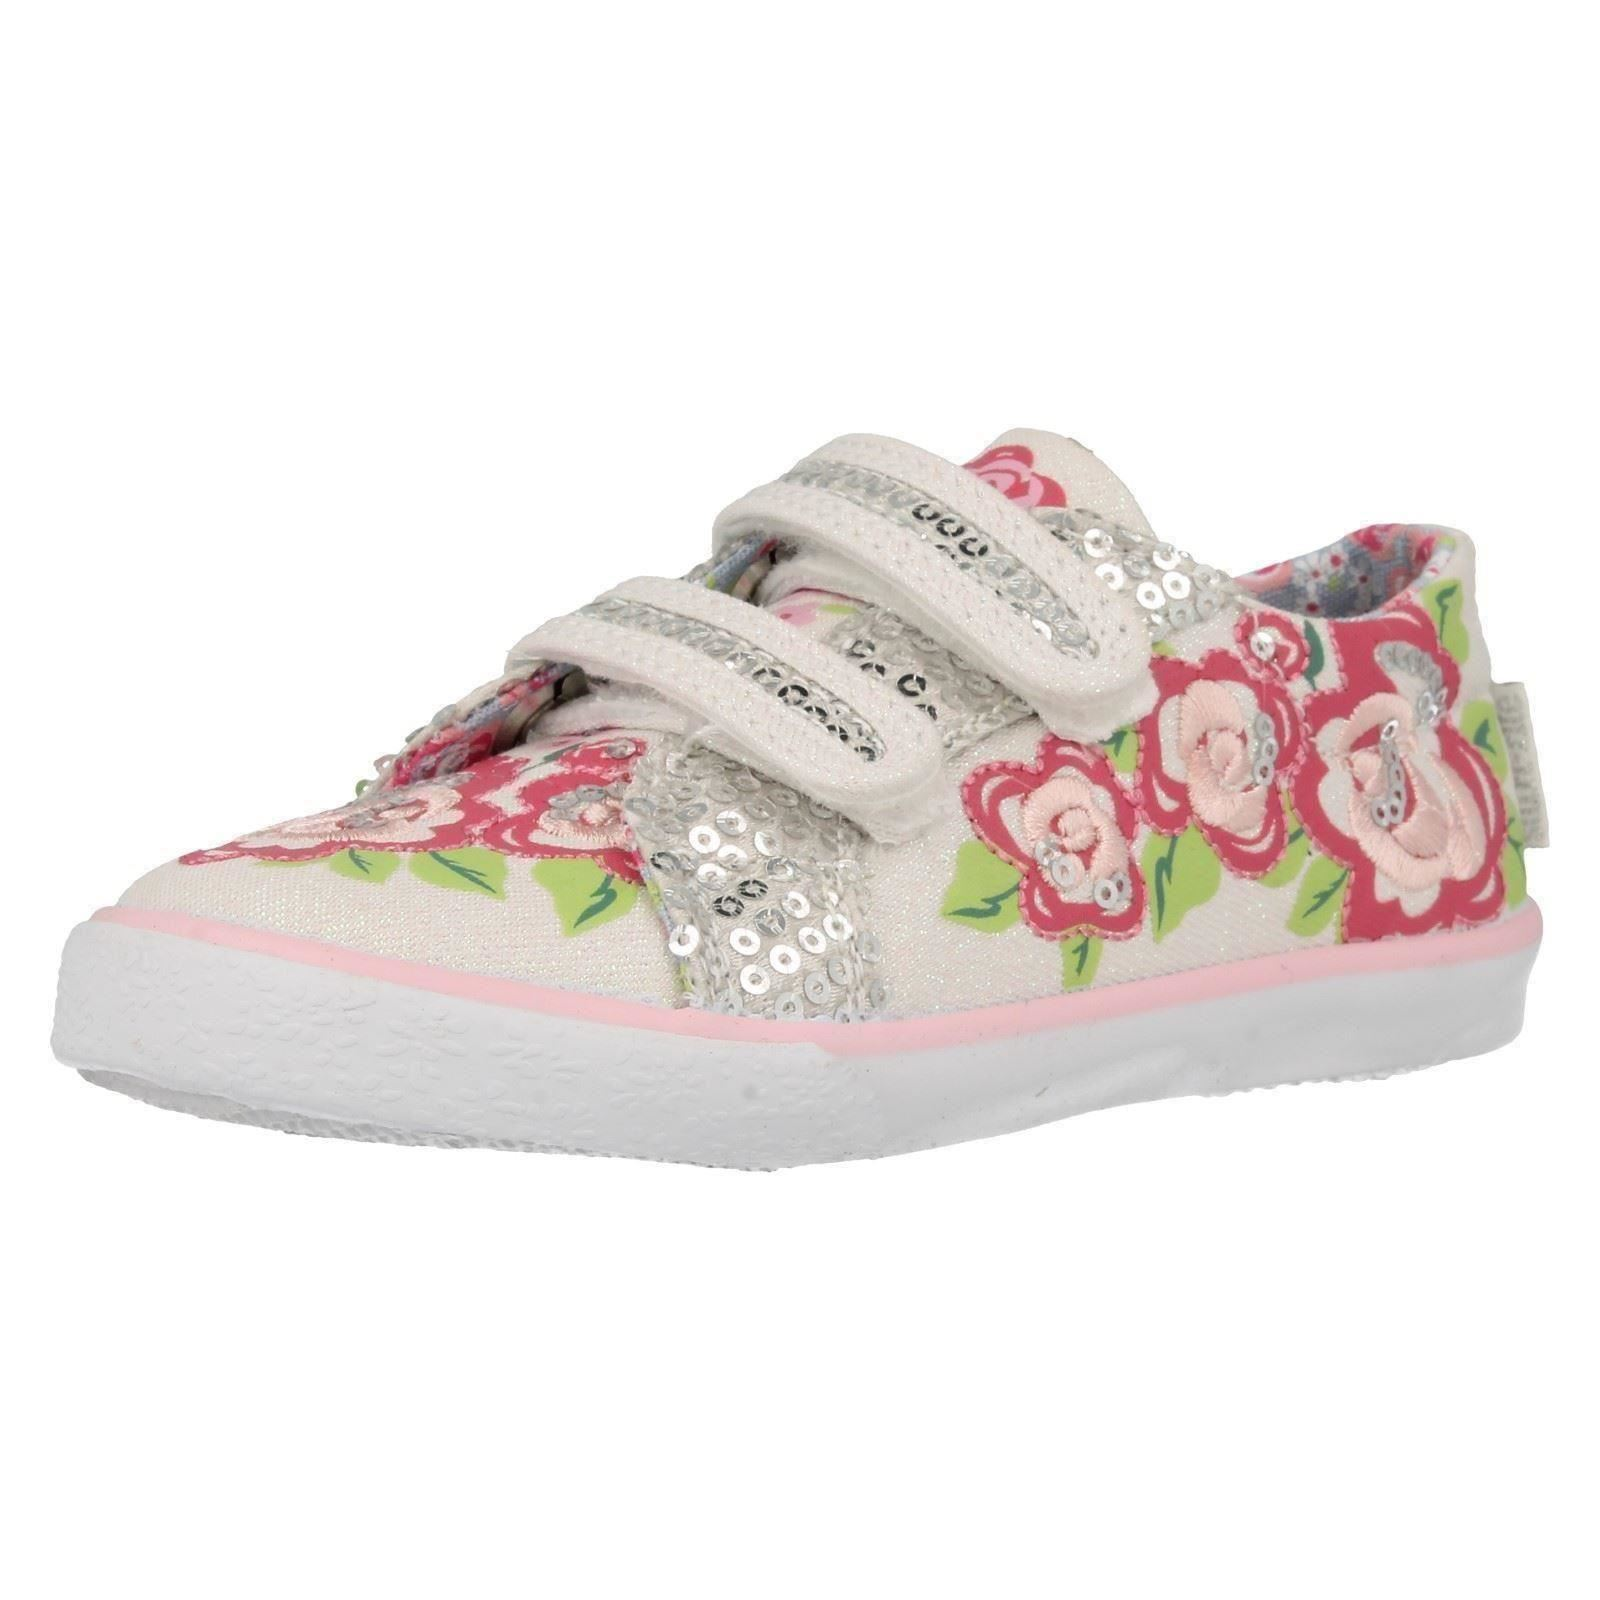 Girls Startrite Washable Canvas Pumps Rosebud